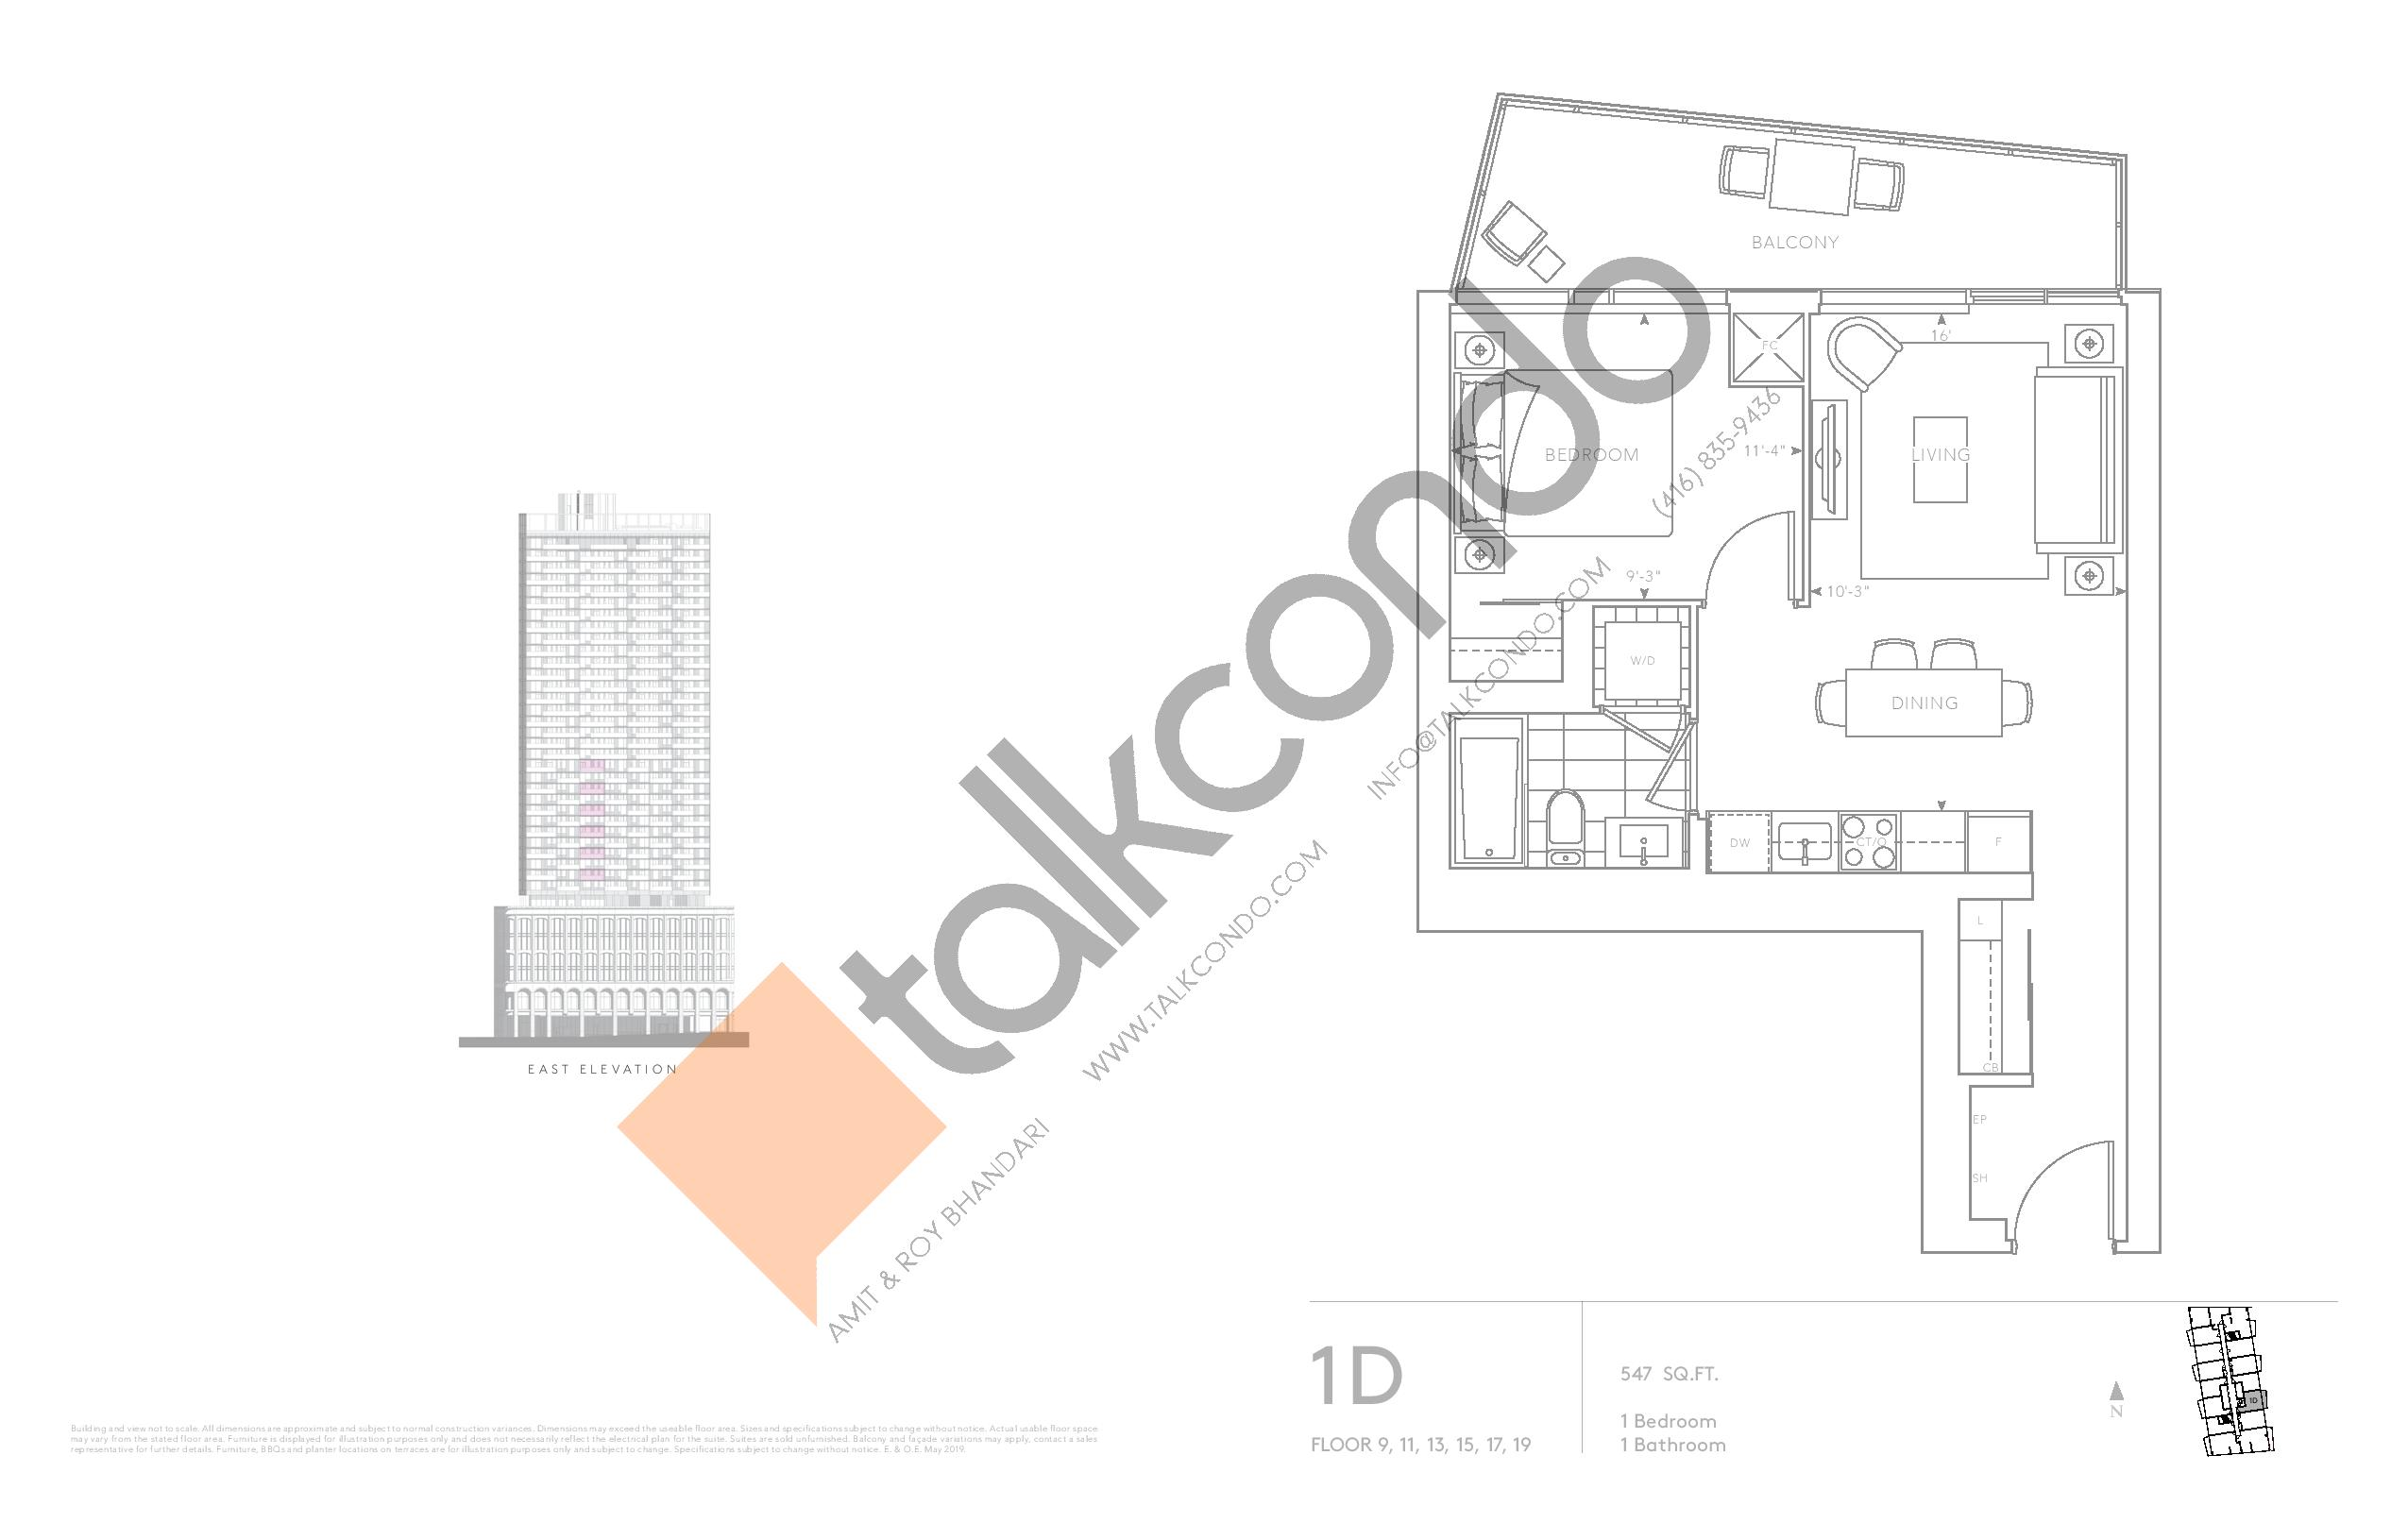 1D - Classic Series Floor Plan at Tridel at The Well Condos - 547 sq.ft